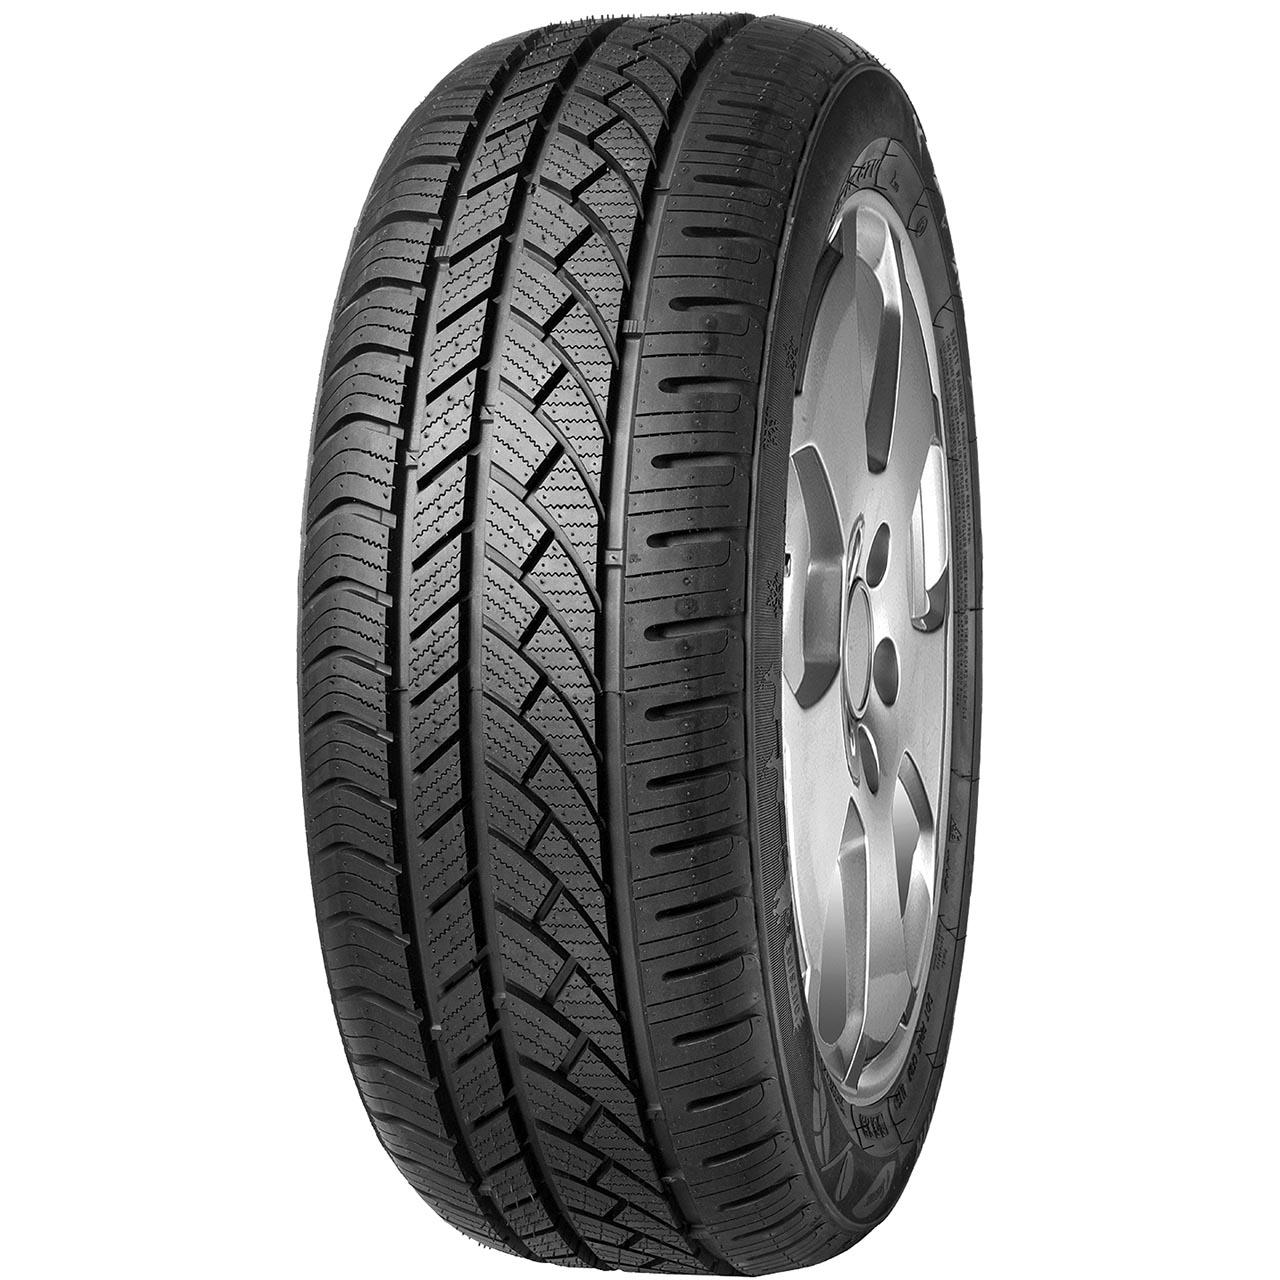 Atlas Green 4S 195/65R15 95H XL